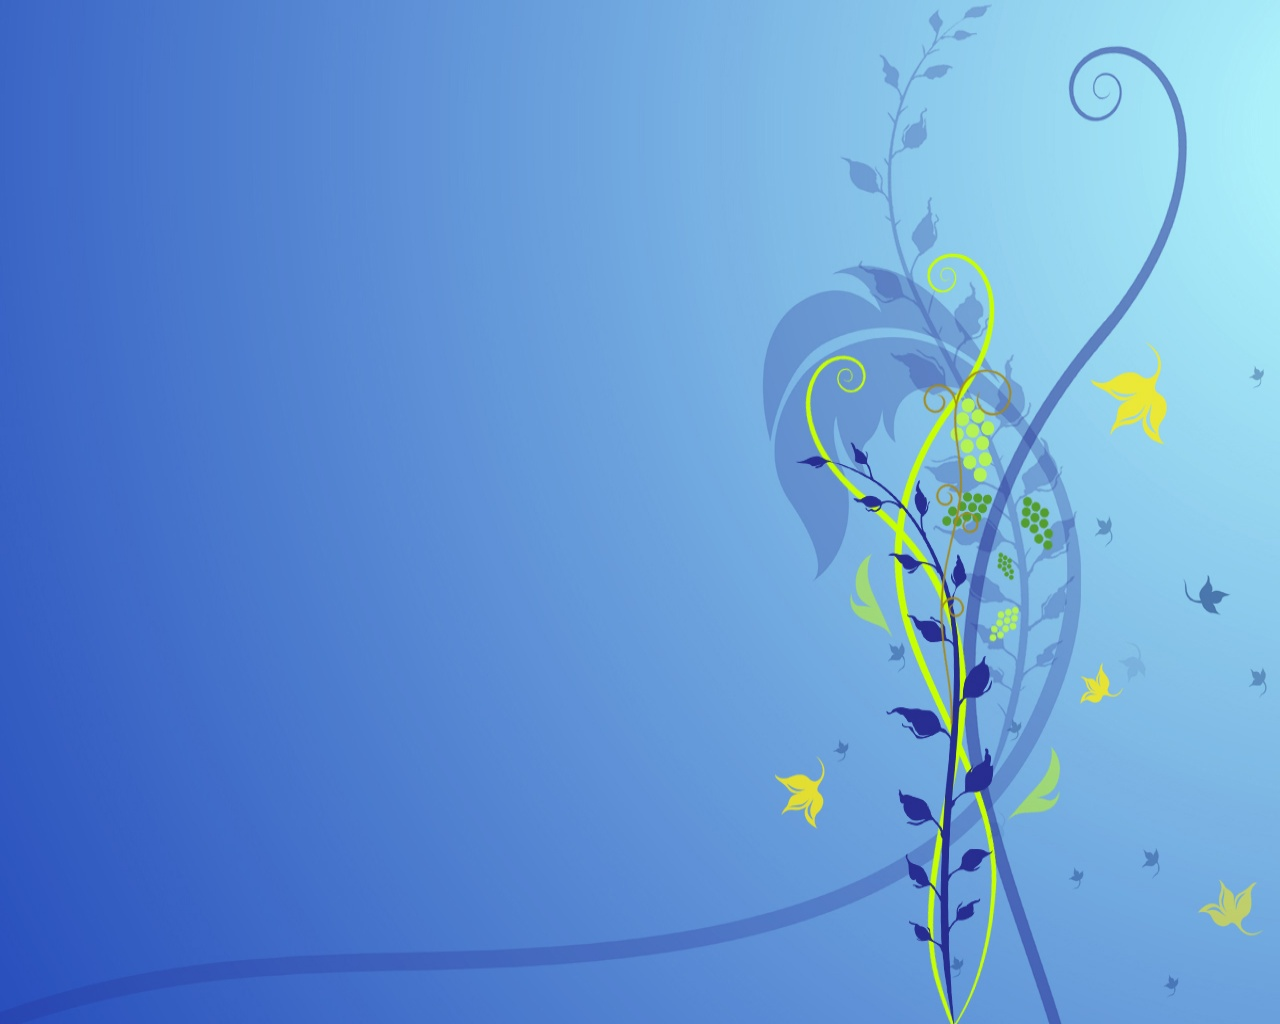 abstract wallpapers hd blue  flower 2